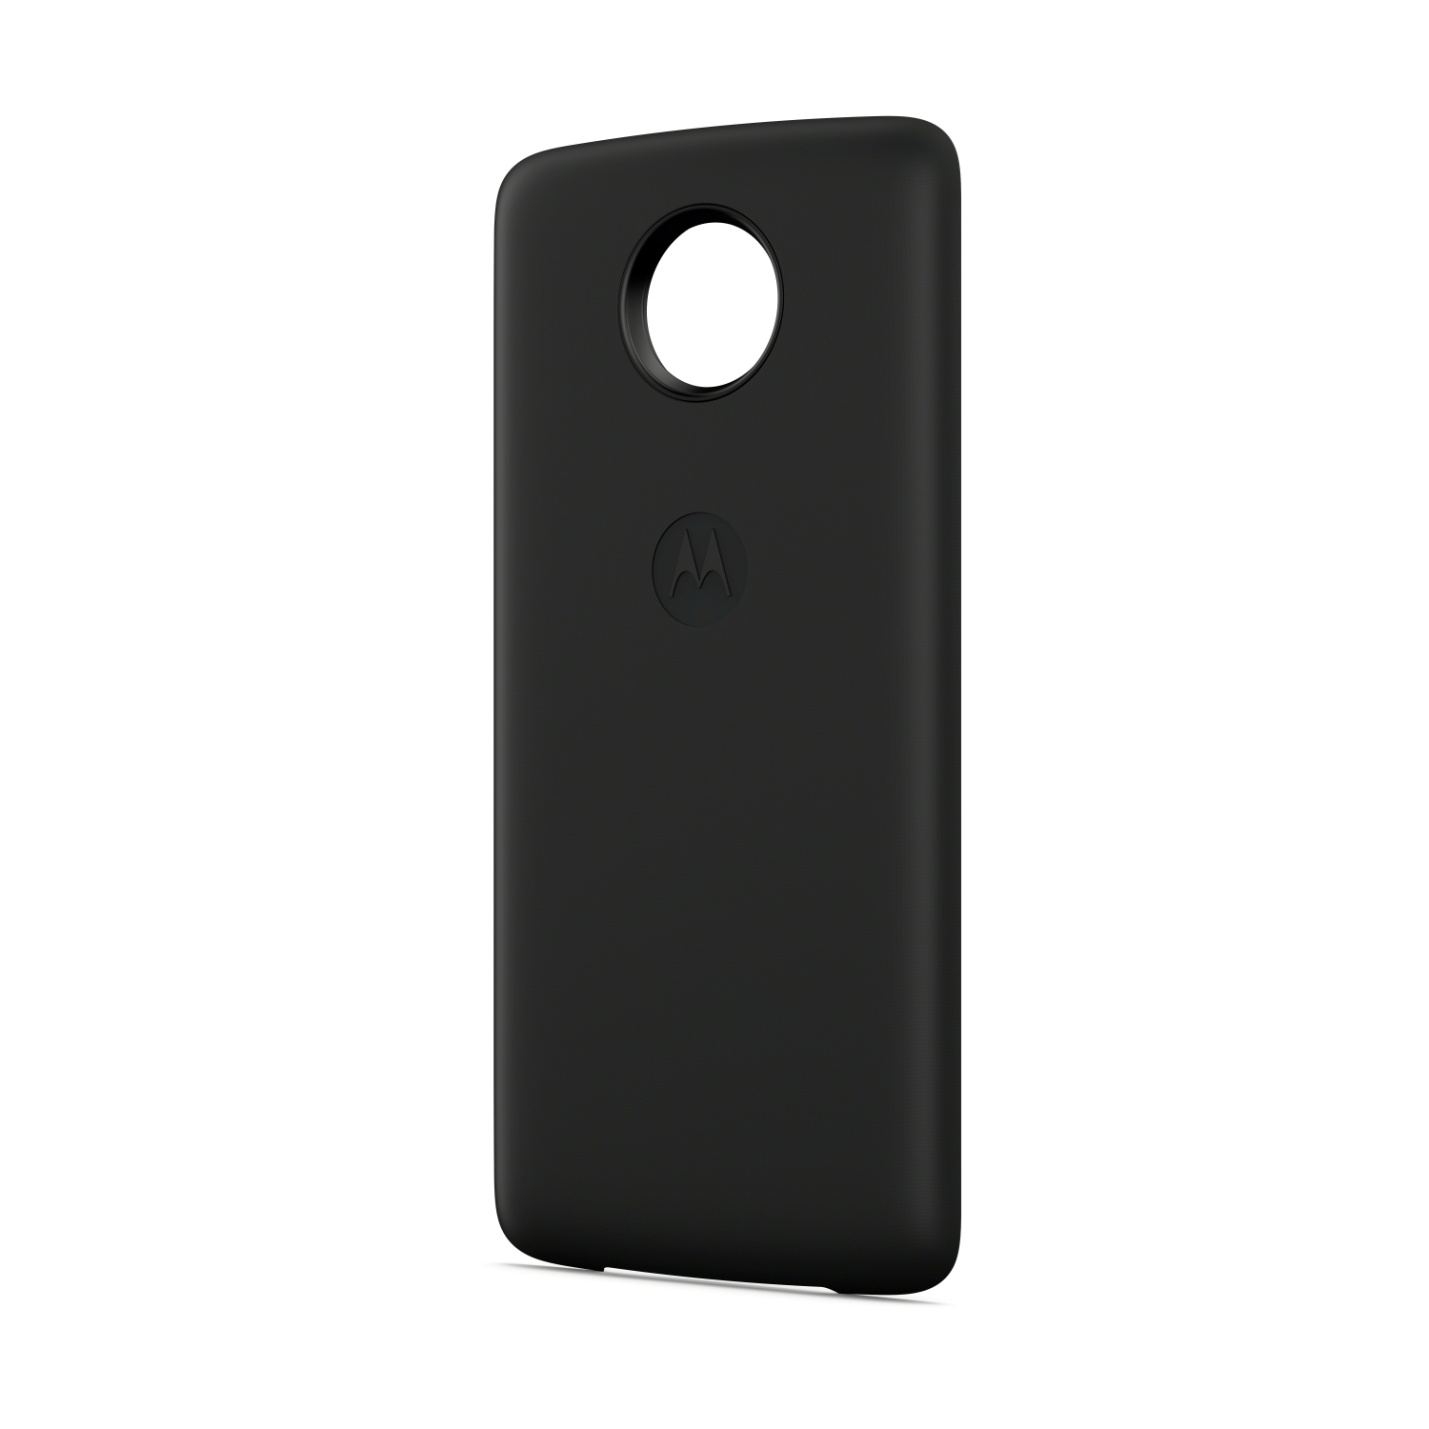 http://motorola.press/Files/_Products/Moto%20MODs/Photos/Power%20Pack%20MOD/Low%20Cost%20Battery_AmpSideDyn.jpg